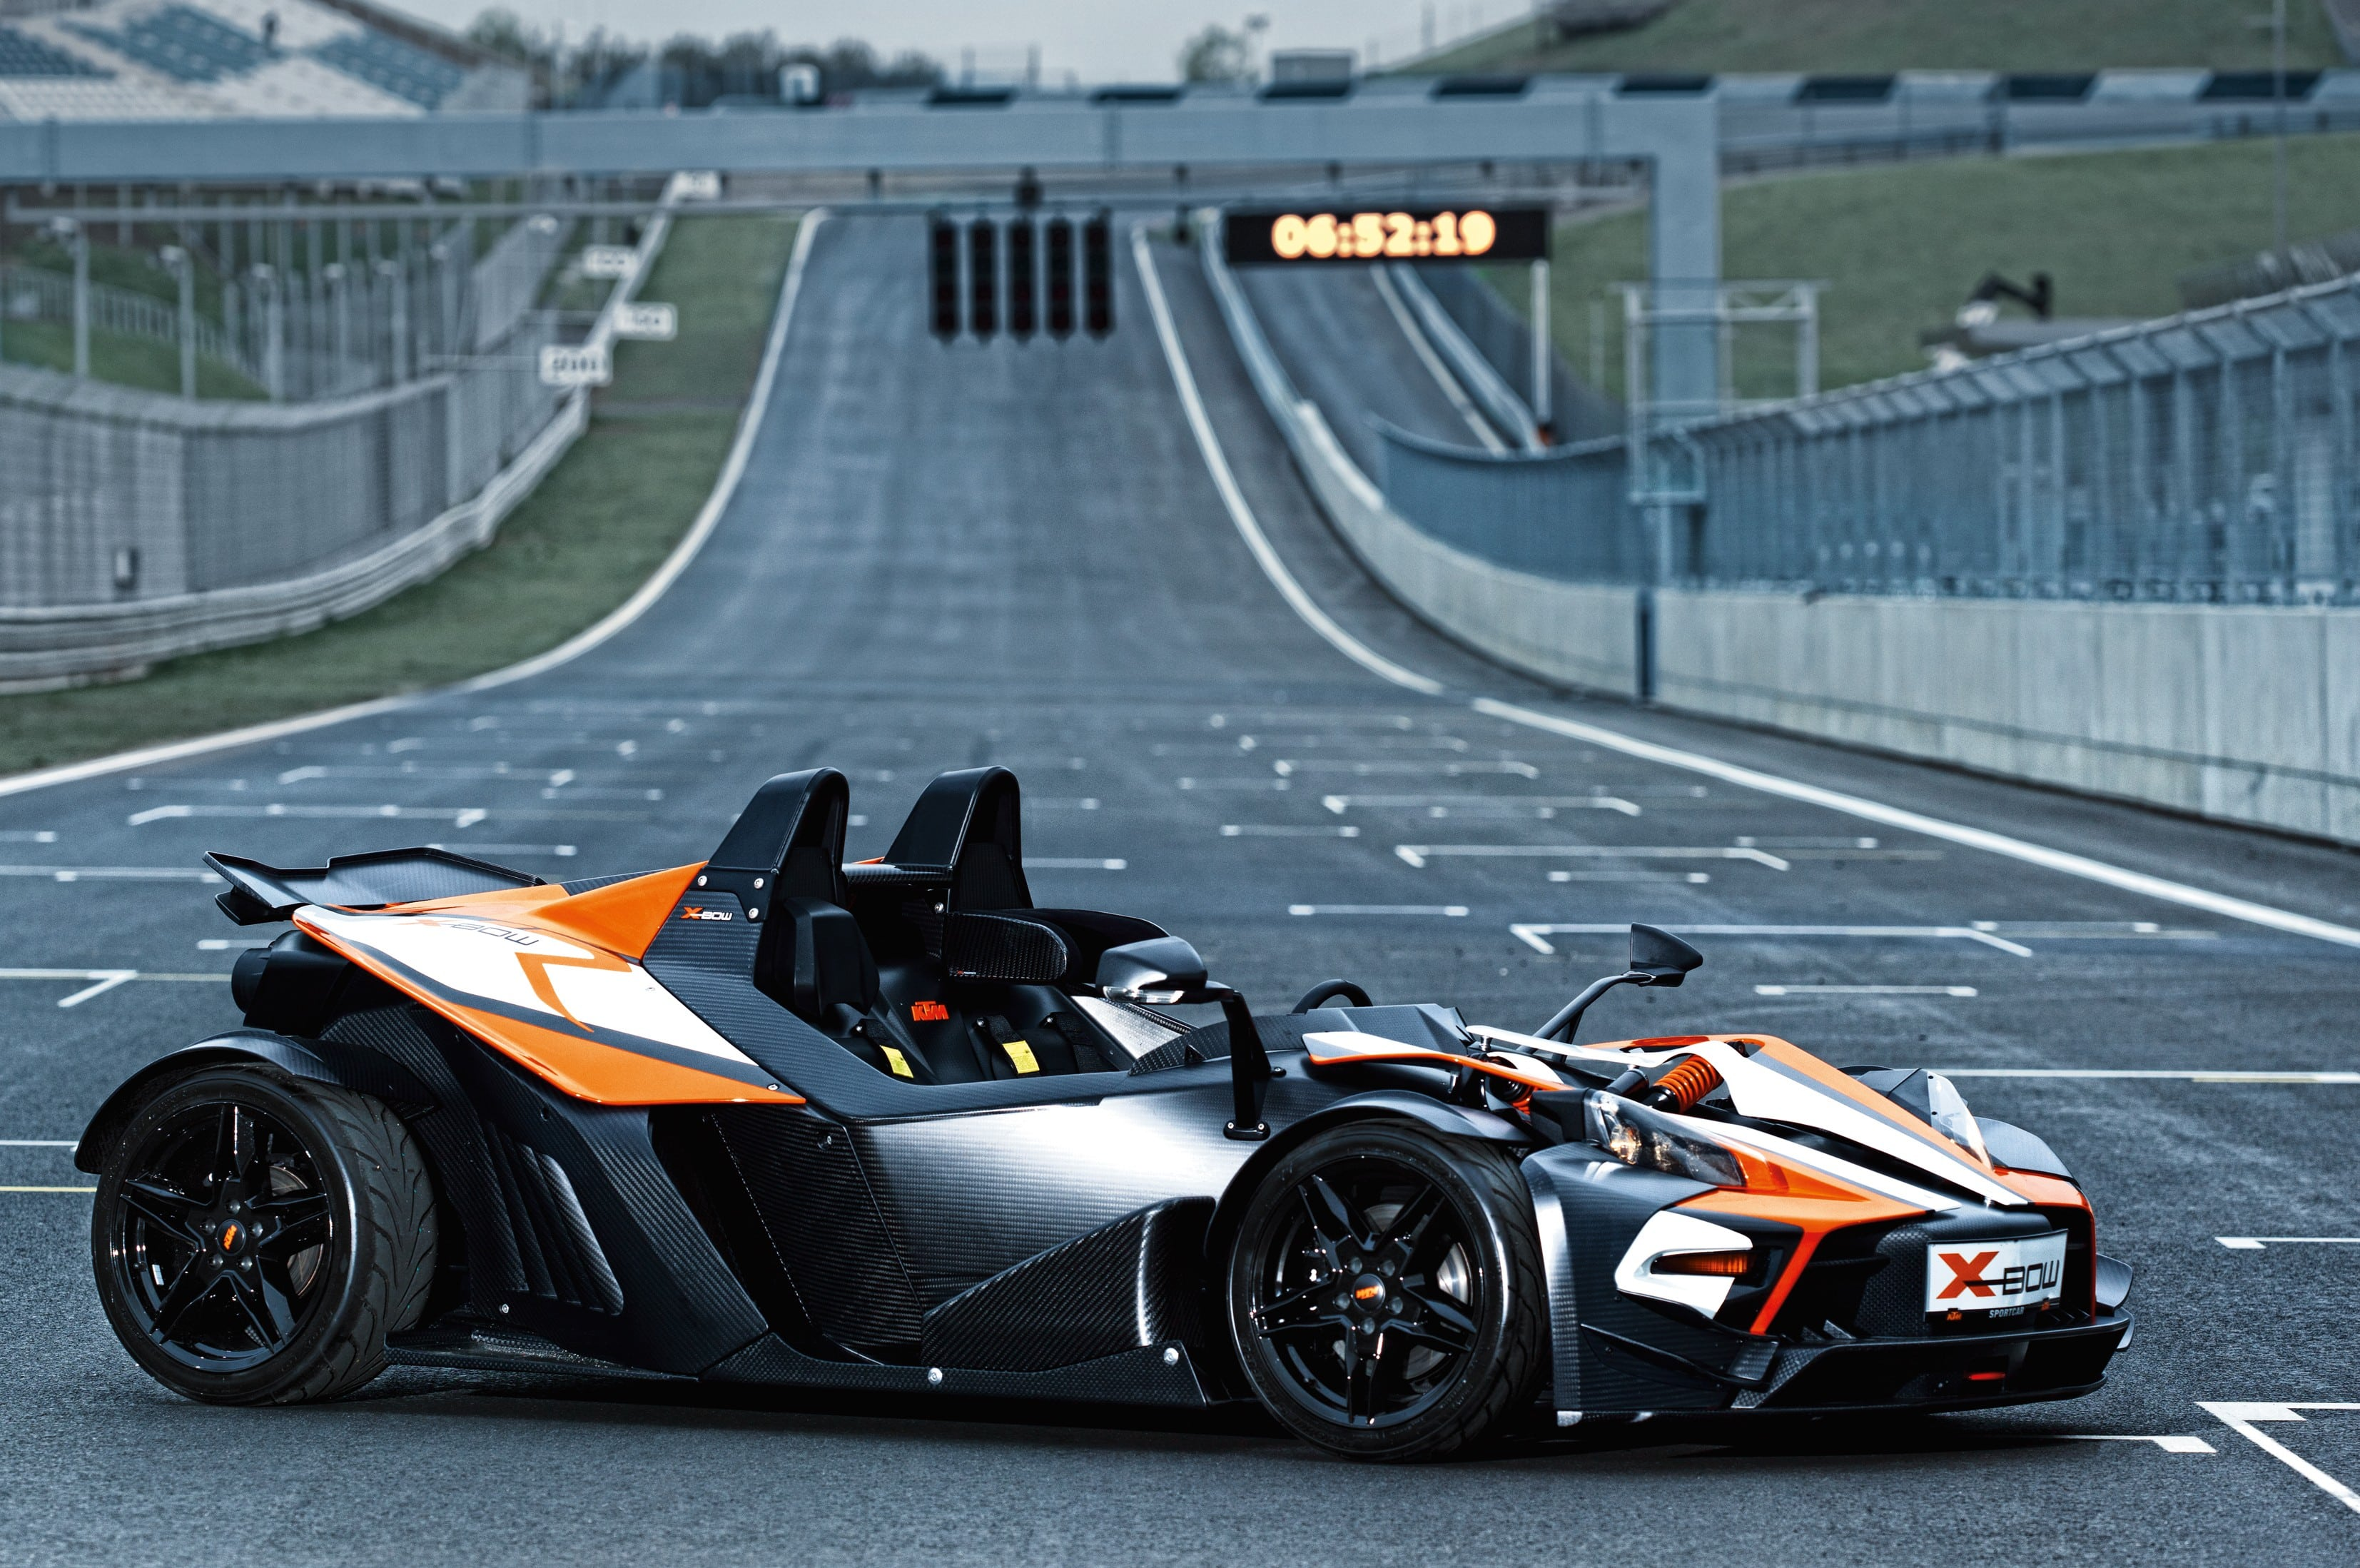 Ktm X Bow Hd Wallpapers 7wallpapers Net